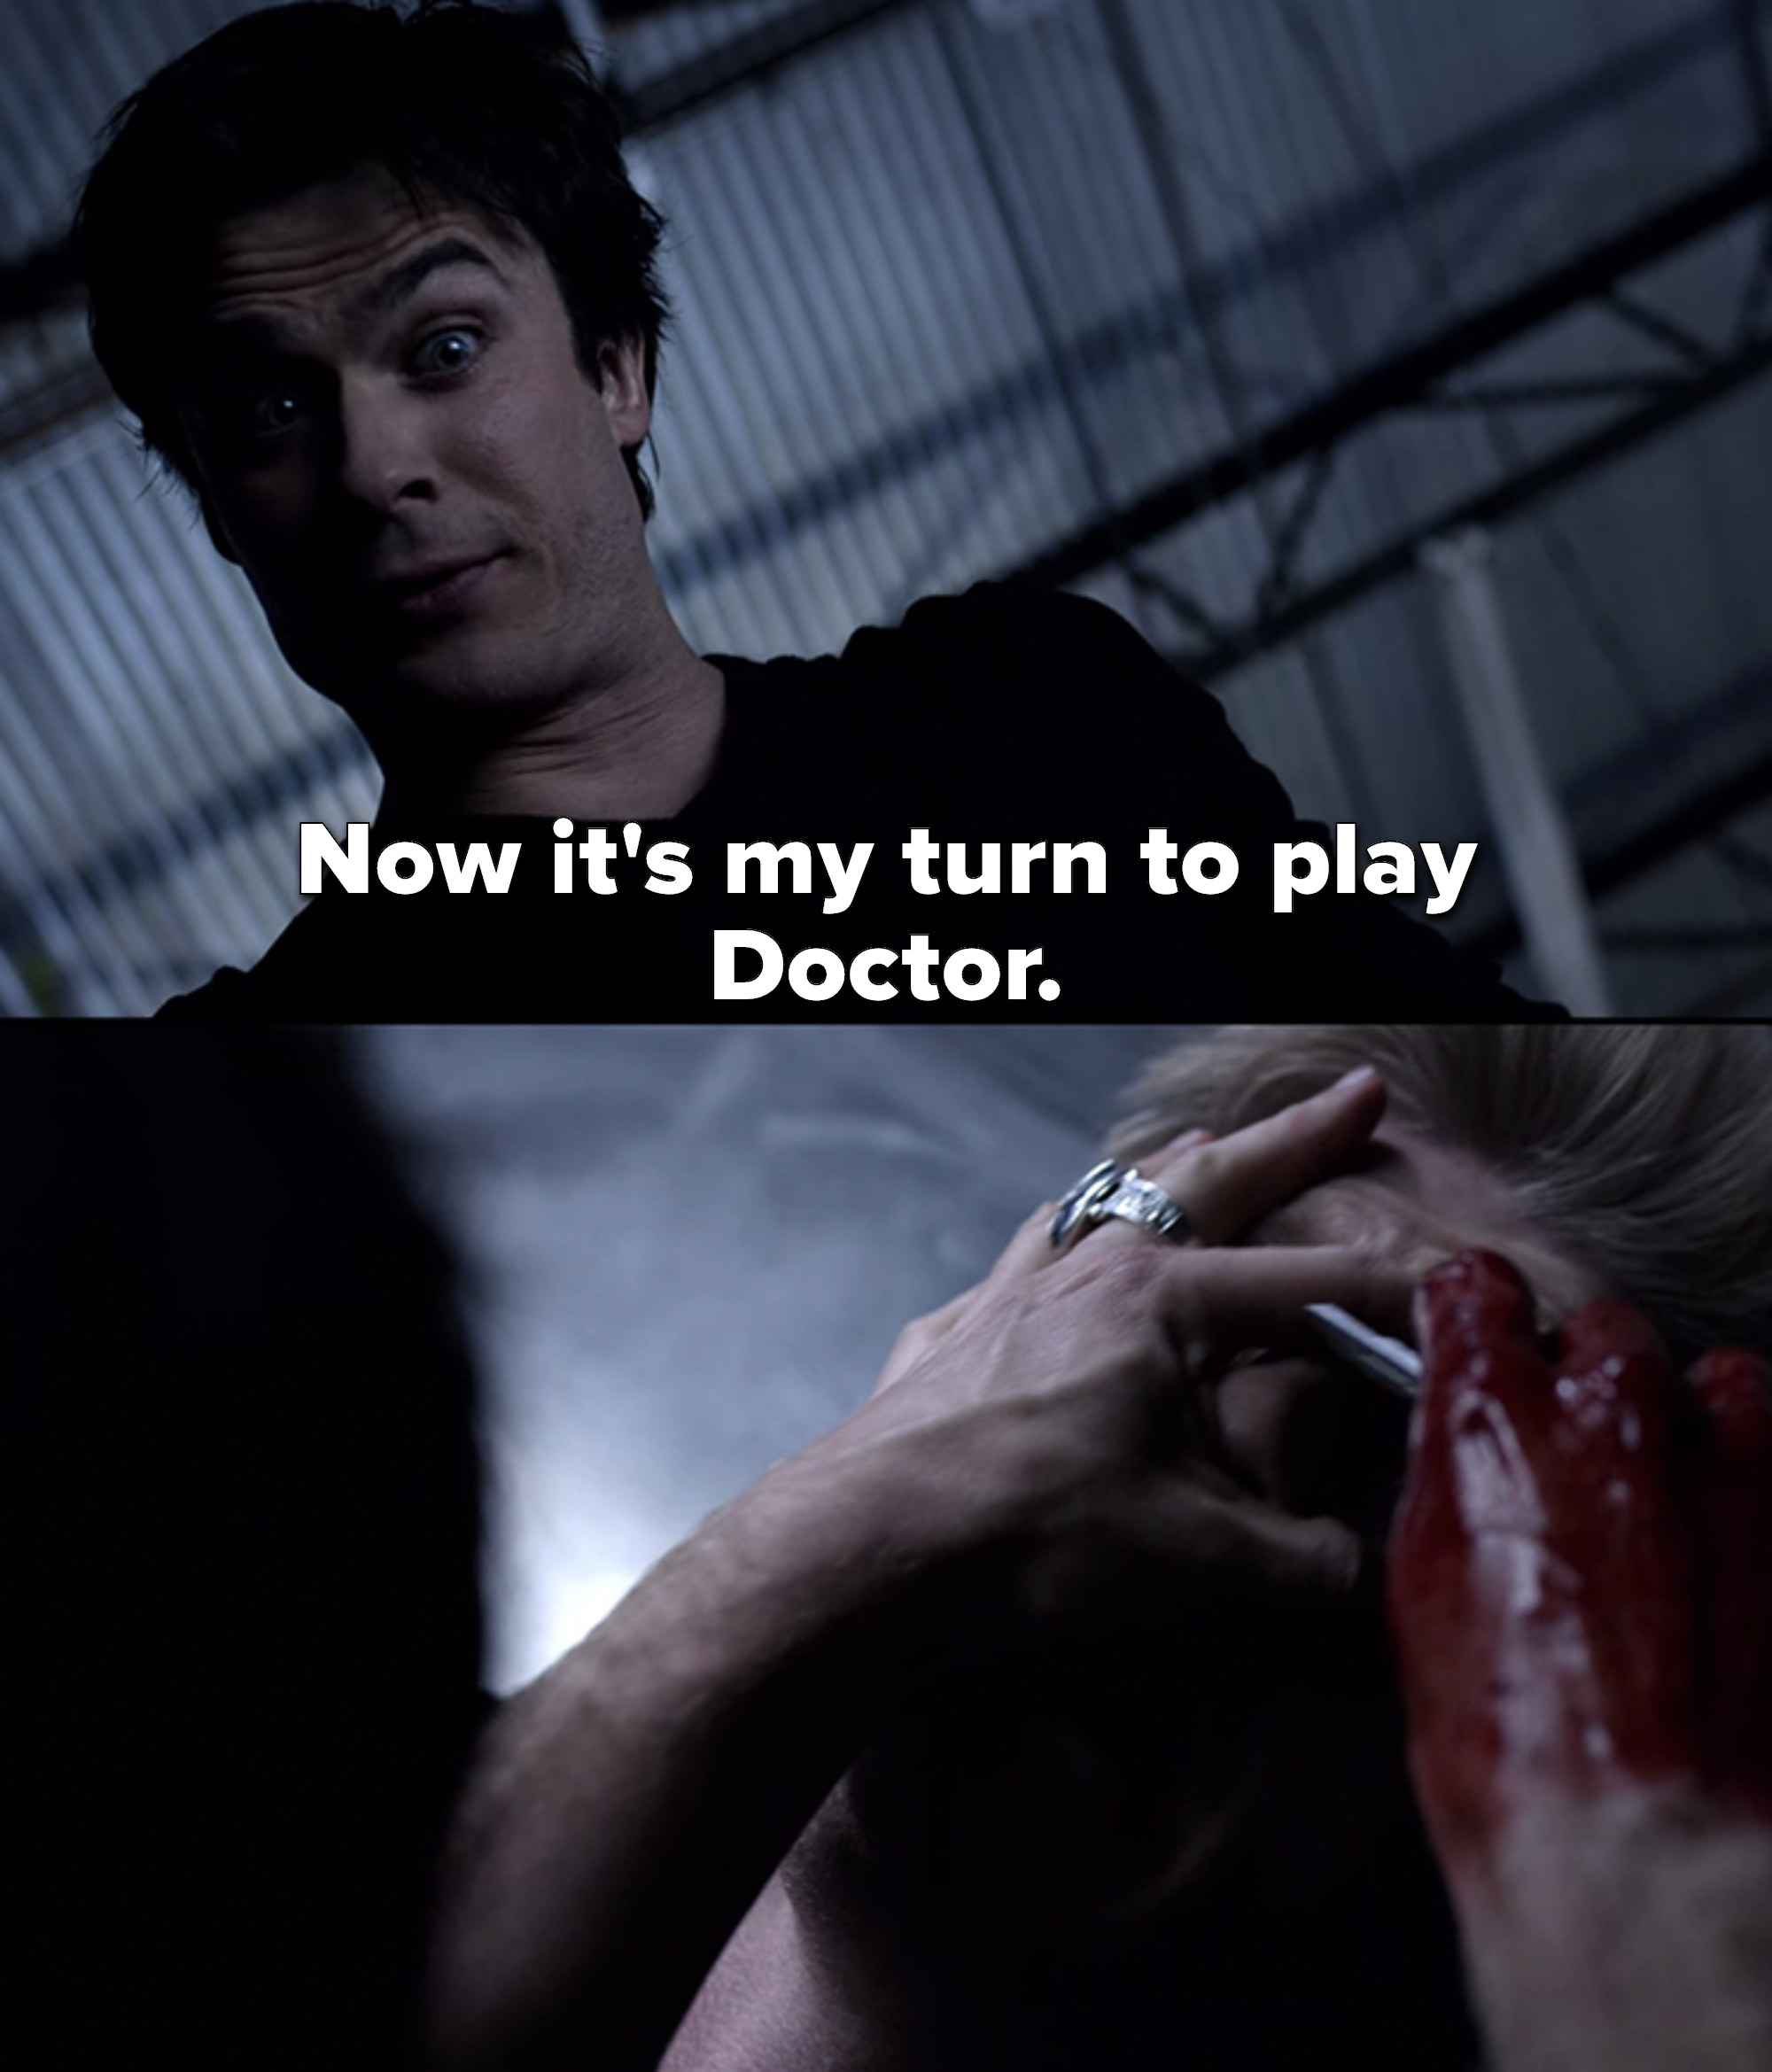 Damon says it's his turn to play doctor and starts cutting out Wes's eye